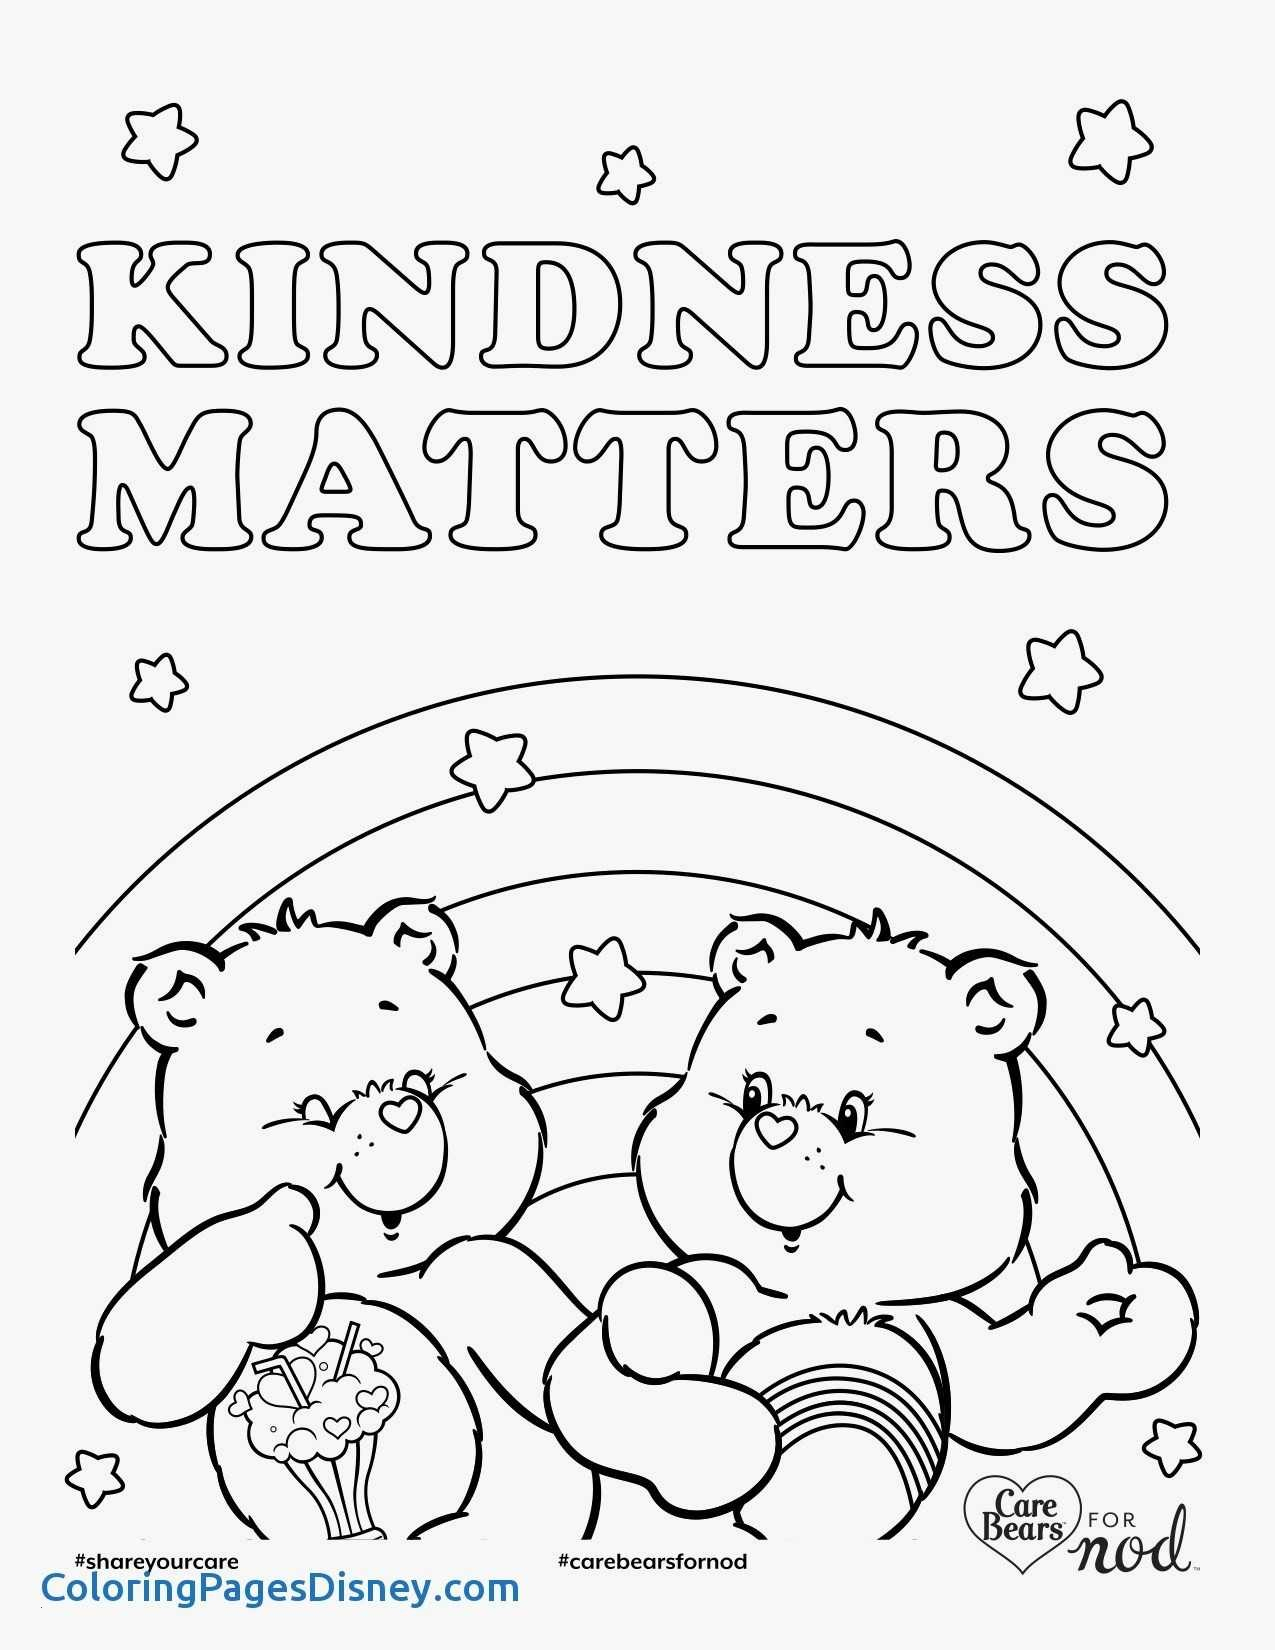 Coloring Pages Of Kittens  Gallery 9g - Save it to your computer